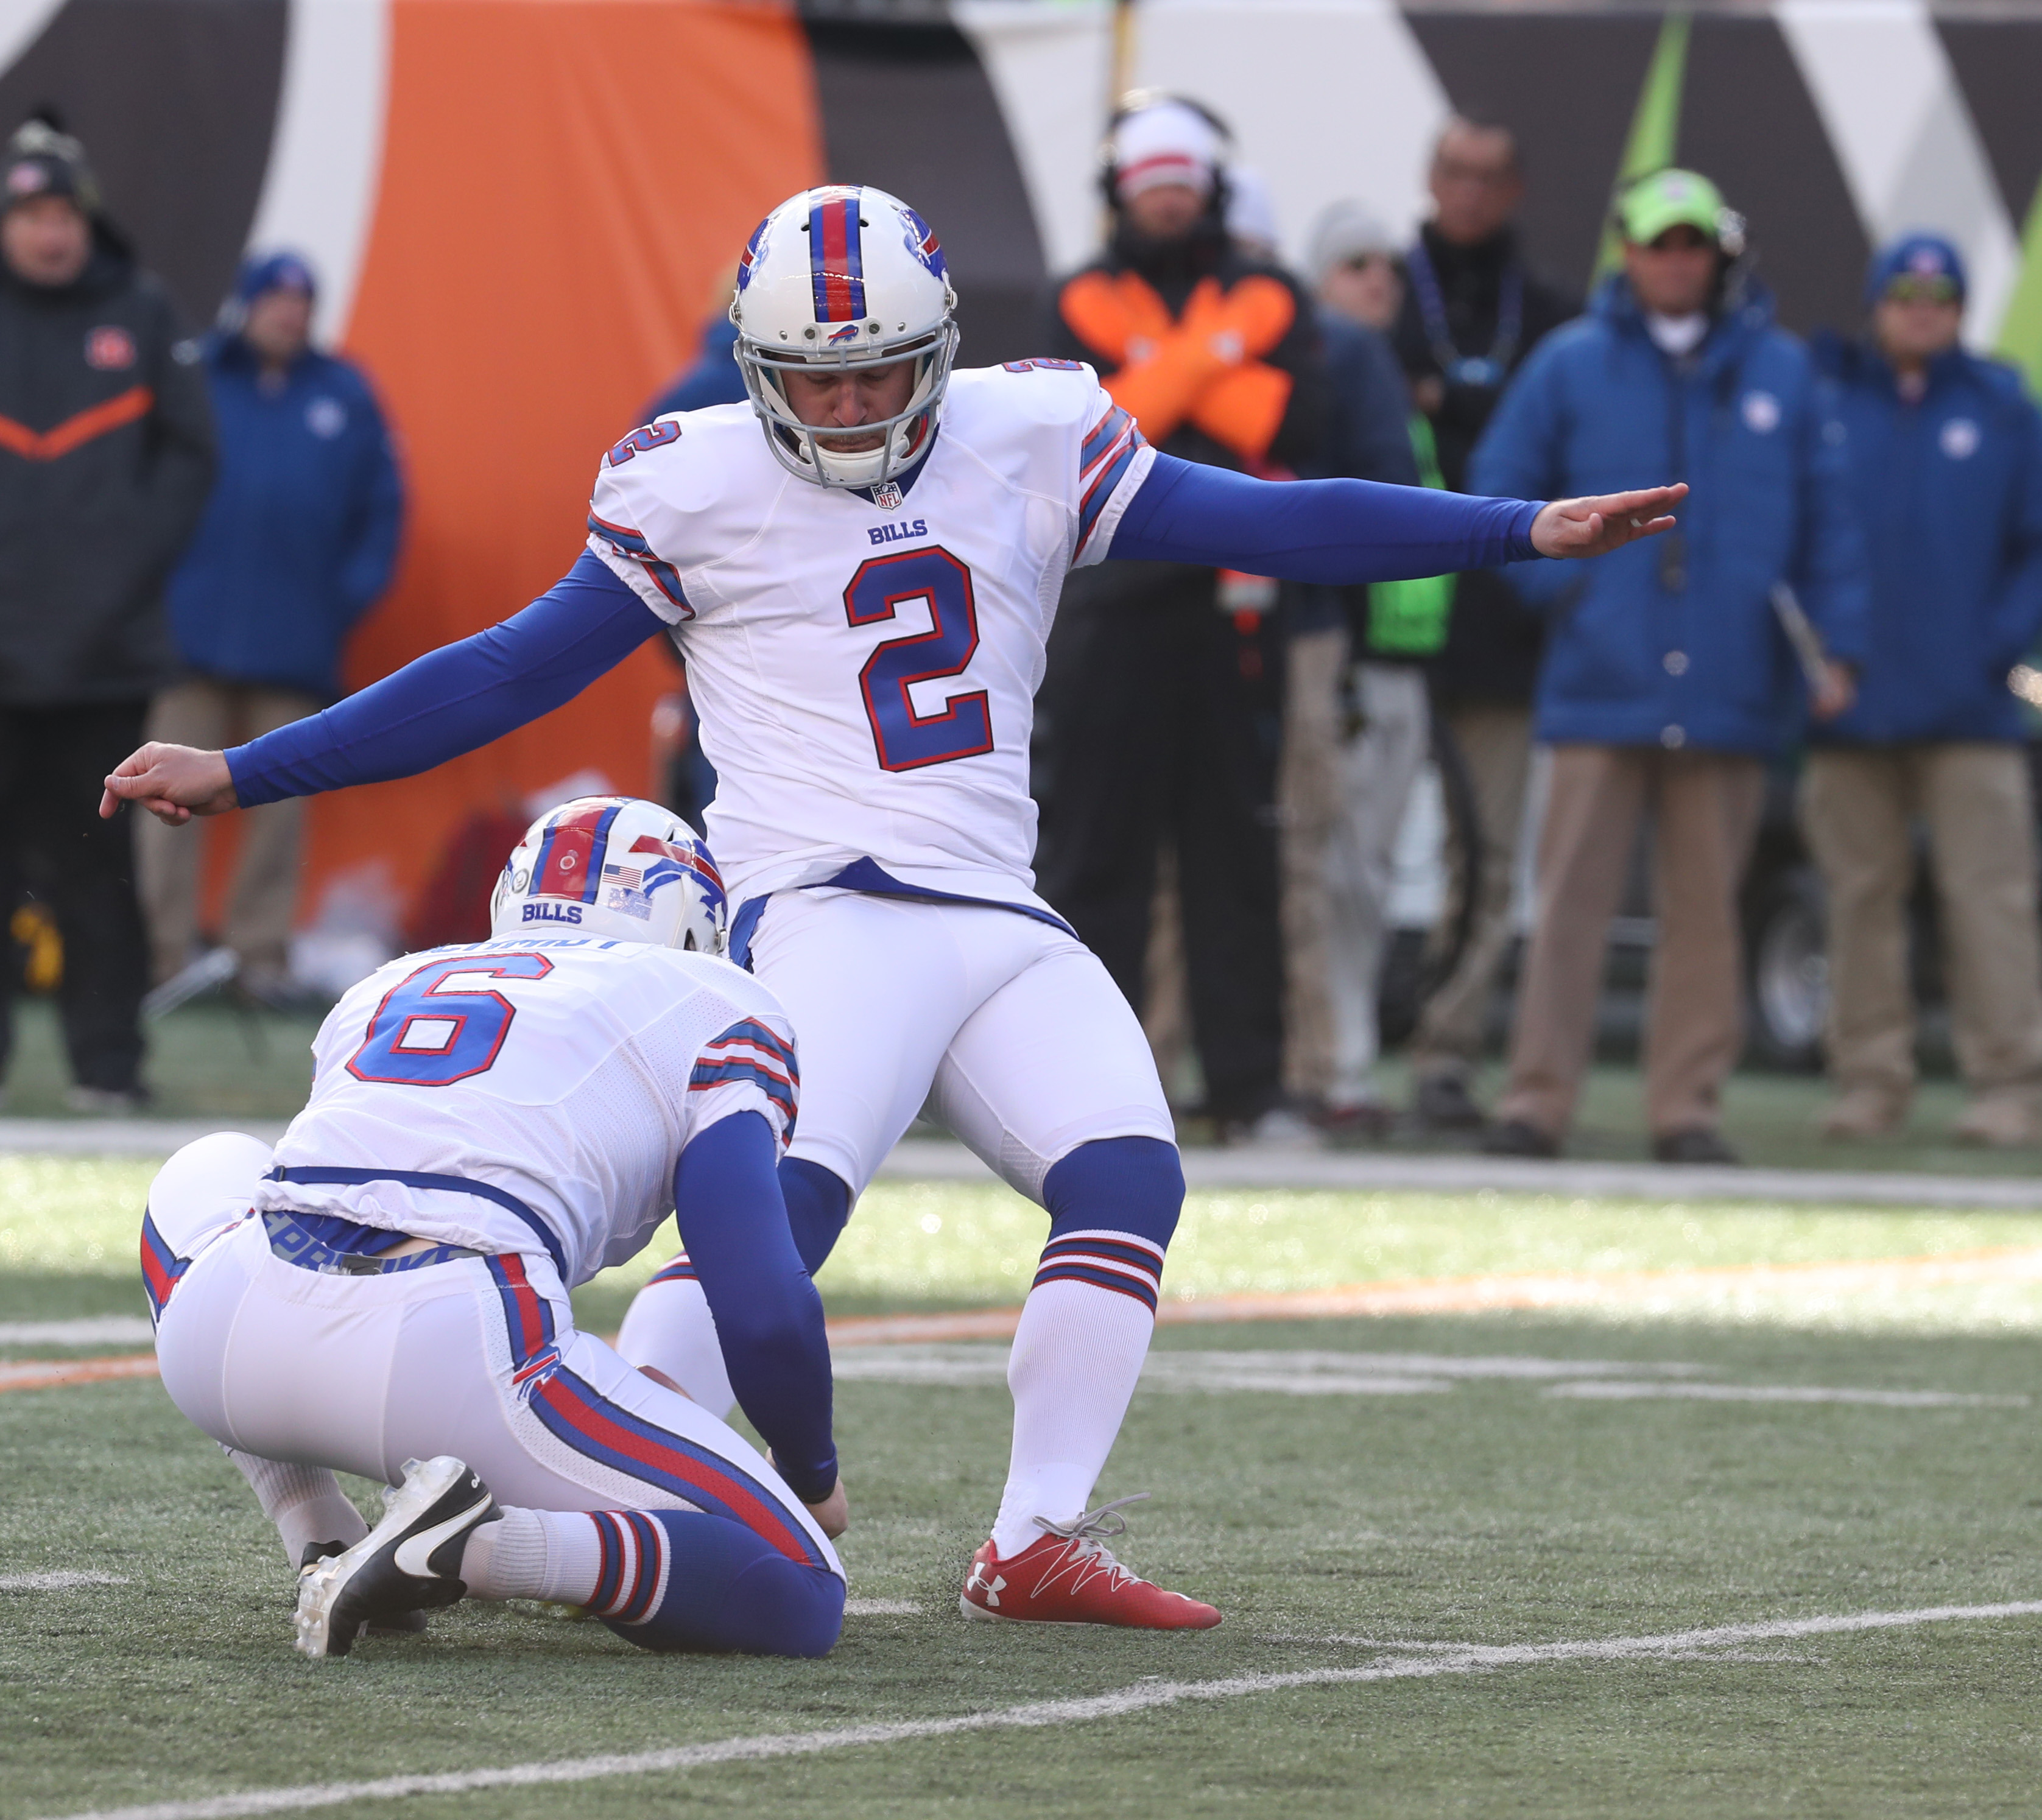 Dan Carpenter kicks a 26-yard field goal during the second quarter. He also had a 54-yarder, while Bengals kicker Mike Nugent struggled. (James P. McCoy/Buffalo News)